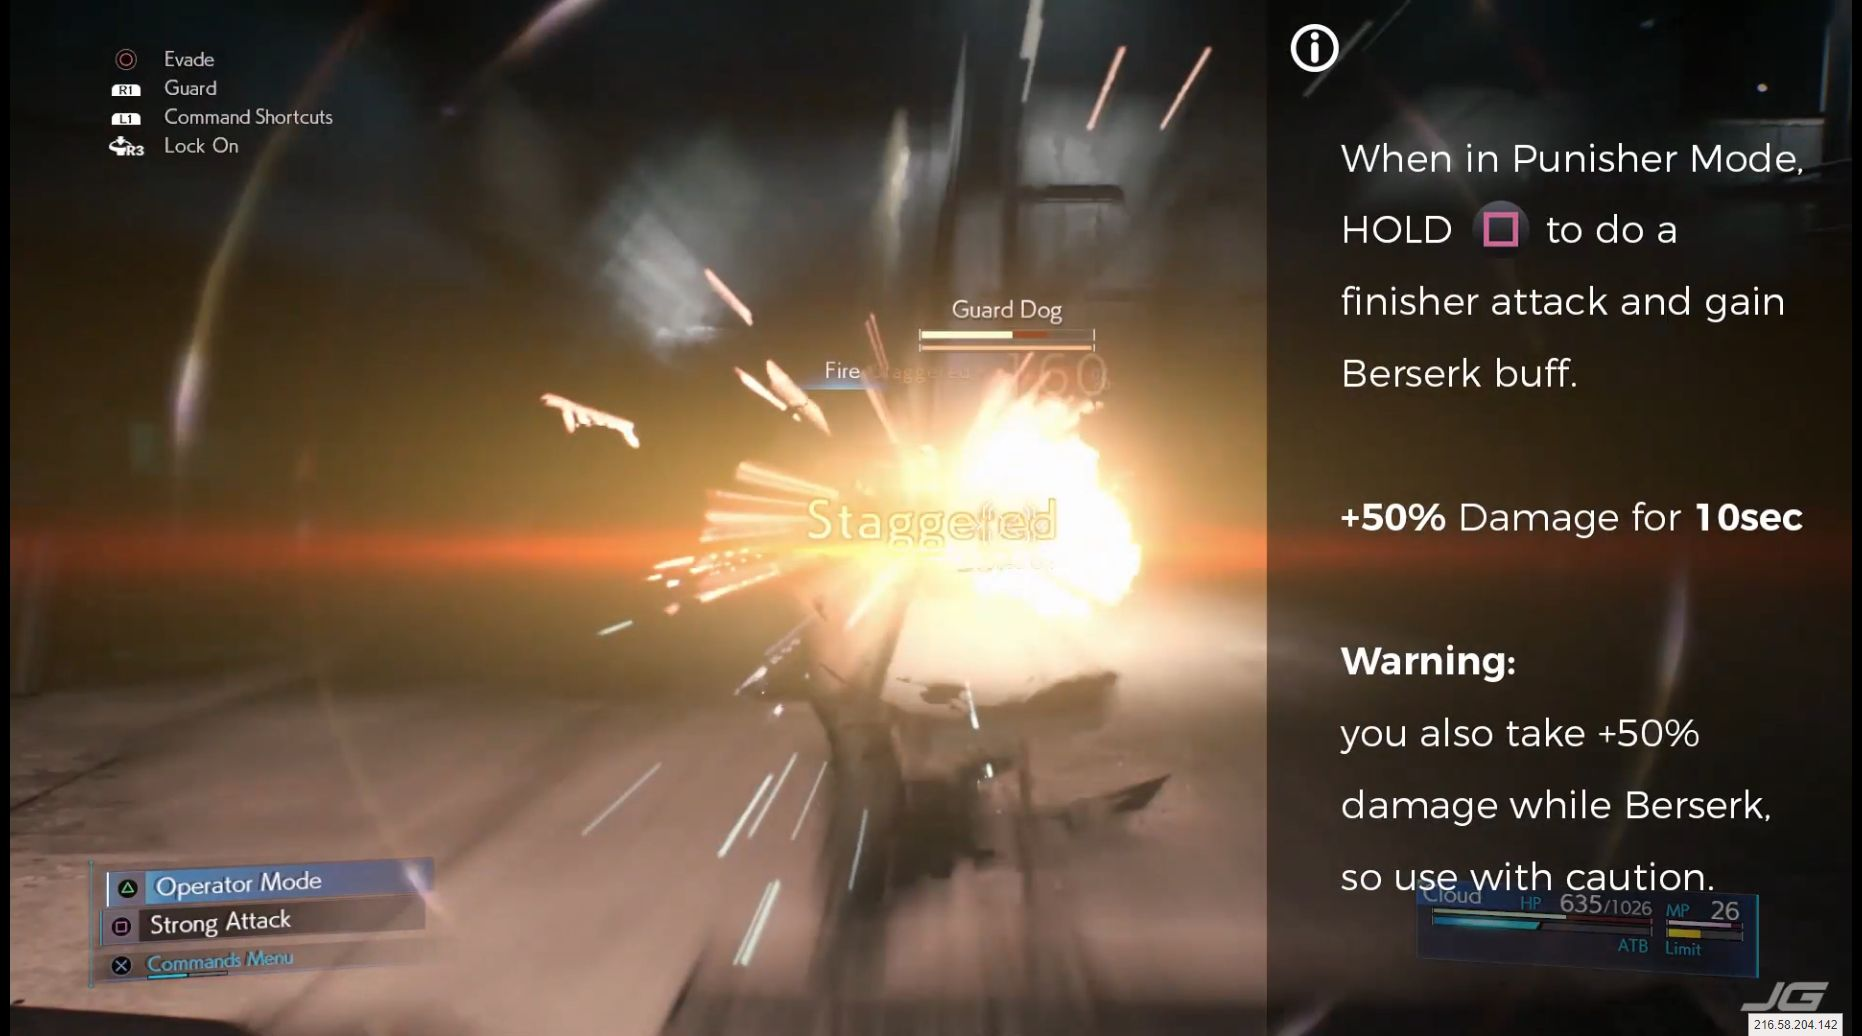 When in Punisher Mode, HOLD (Square) to do a finisher attack and gain Berserk buff. +50% Damage for 10sec